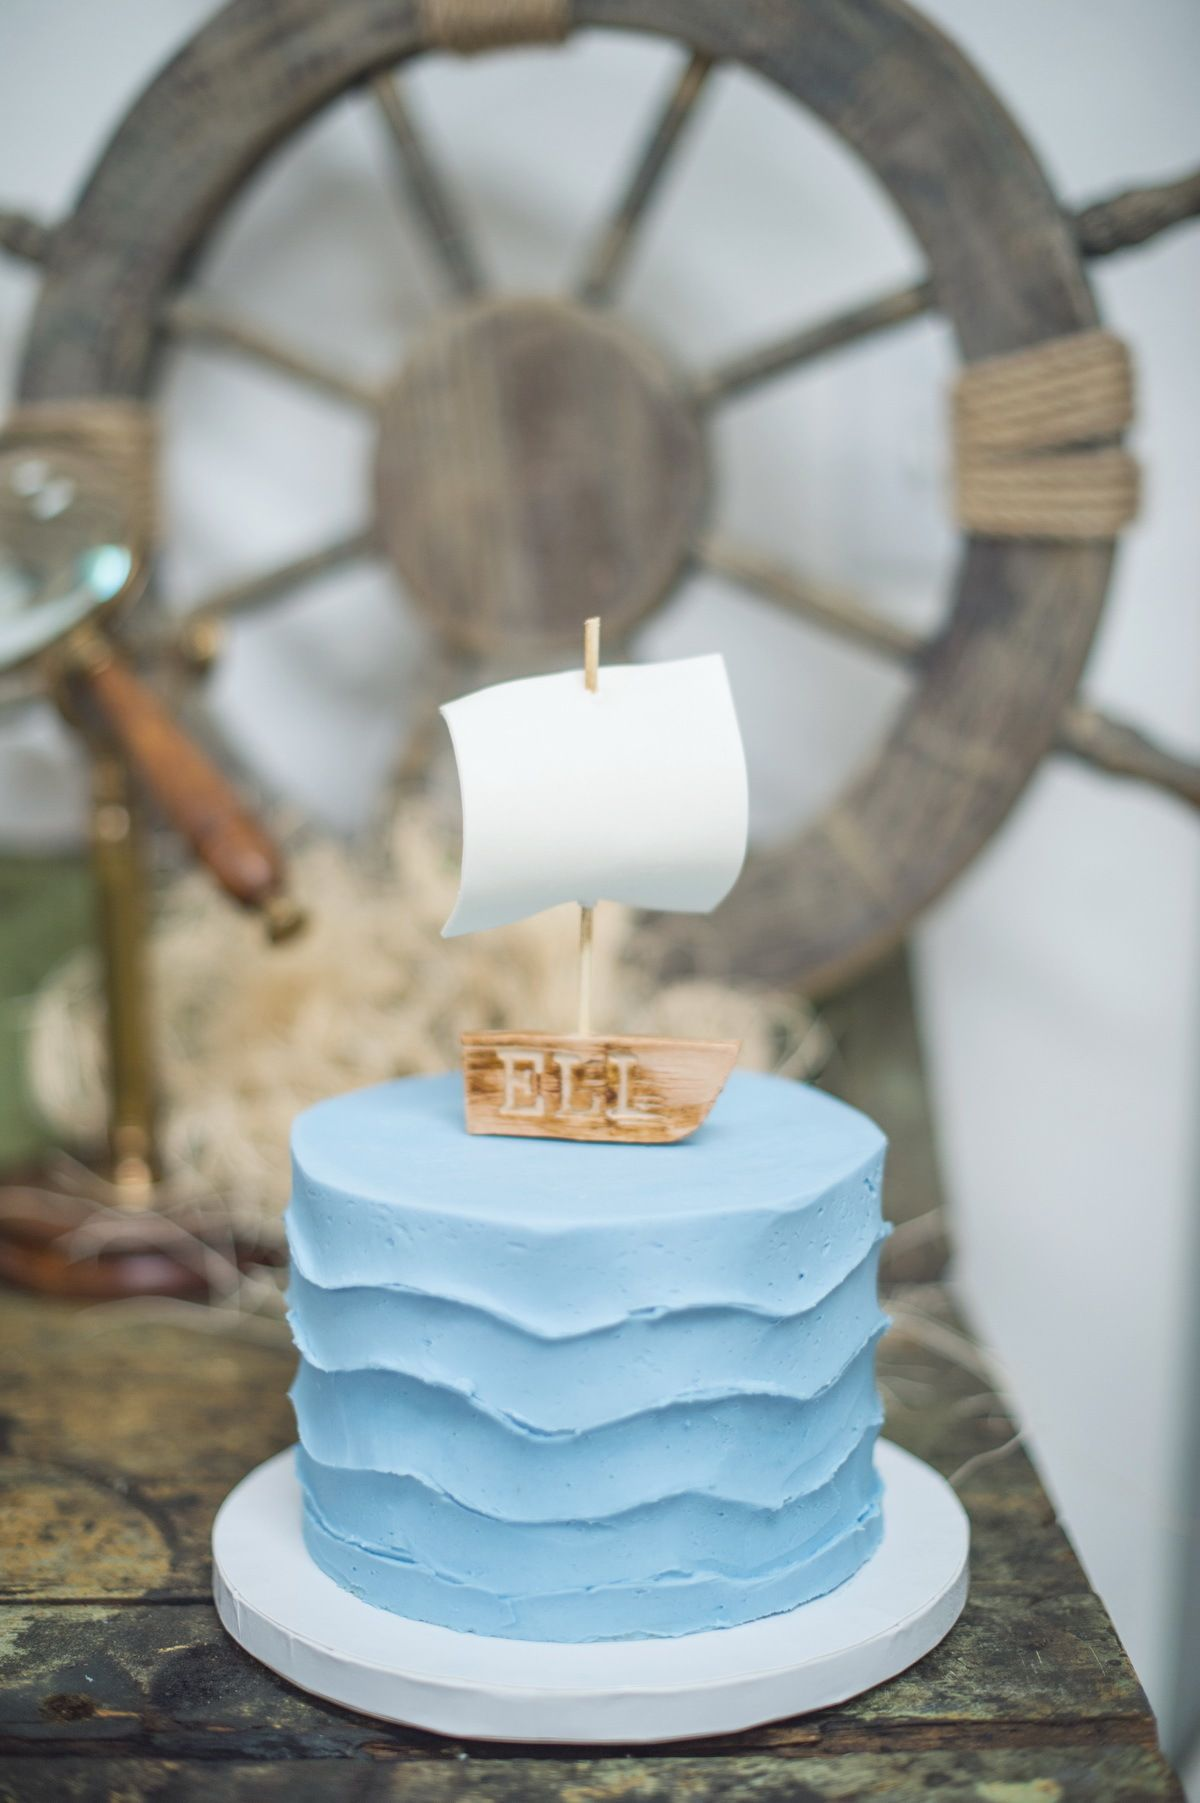 #sailboat, #nautical, #birthday-cake, #blue, #boys-party, #kids-party  Photography: Shalynne Imaging - shalynneimaging.com/ Event Design: Shannon Von Eschen - www.shalynneimaging.com